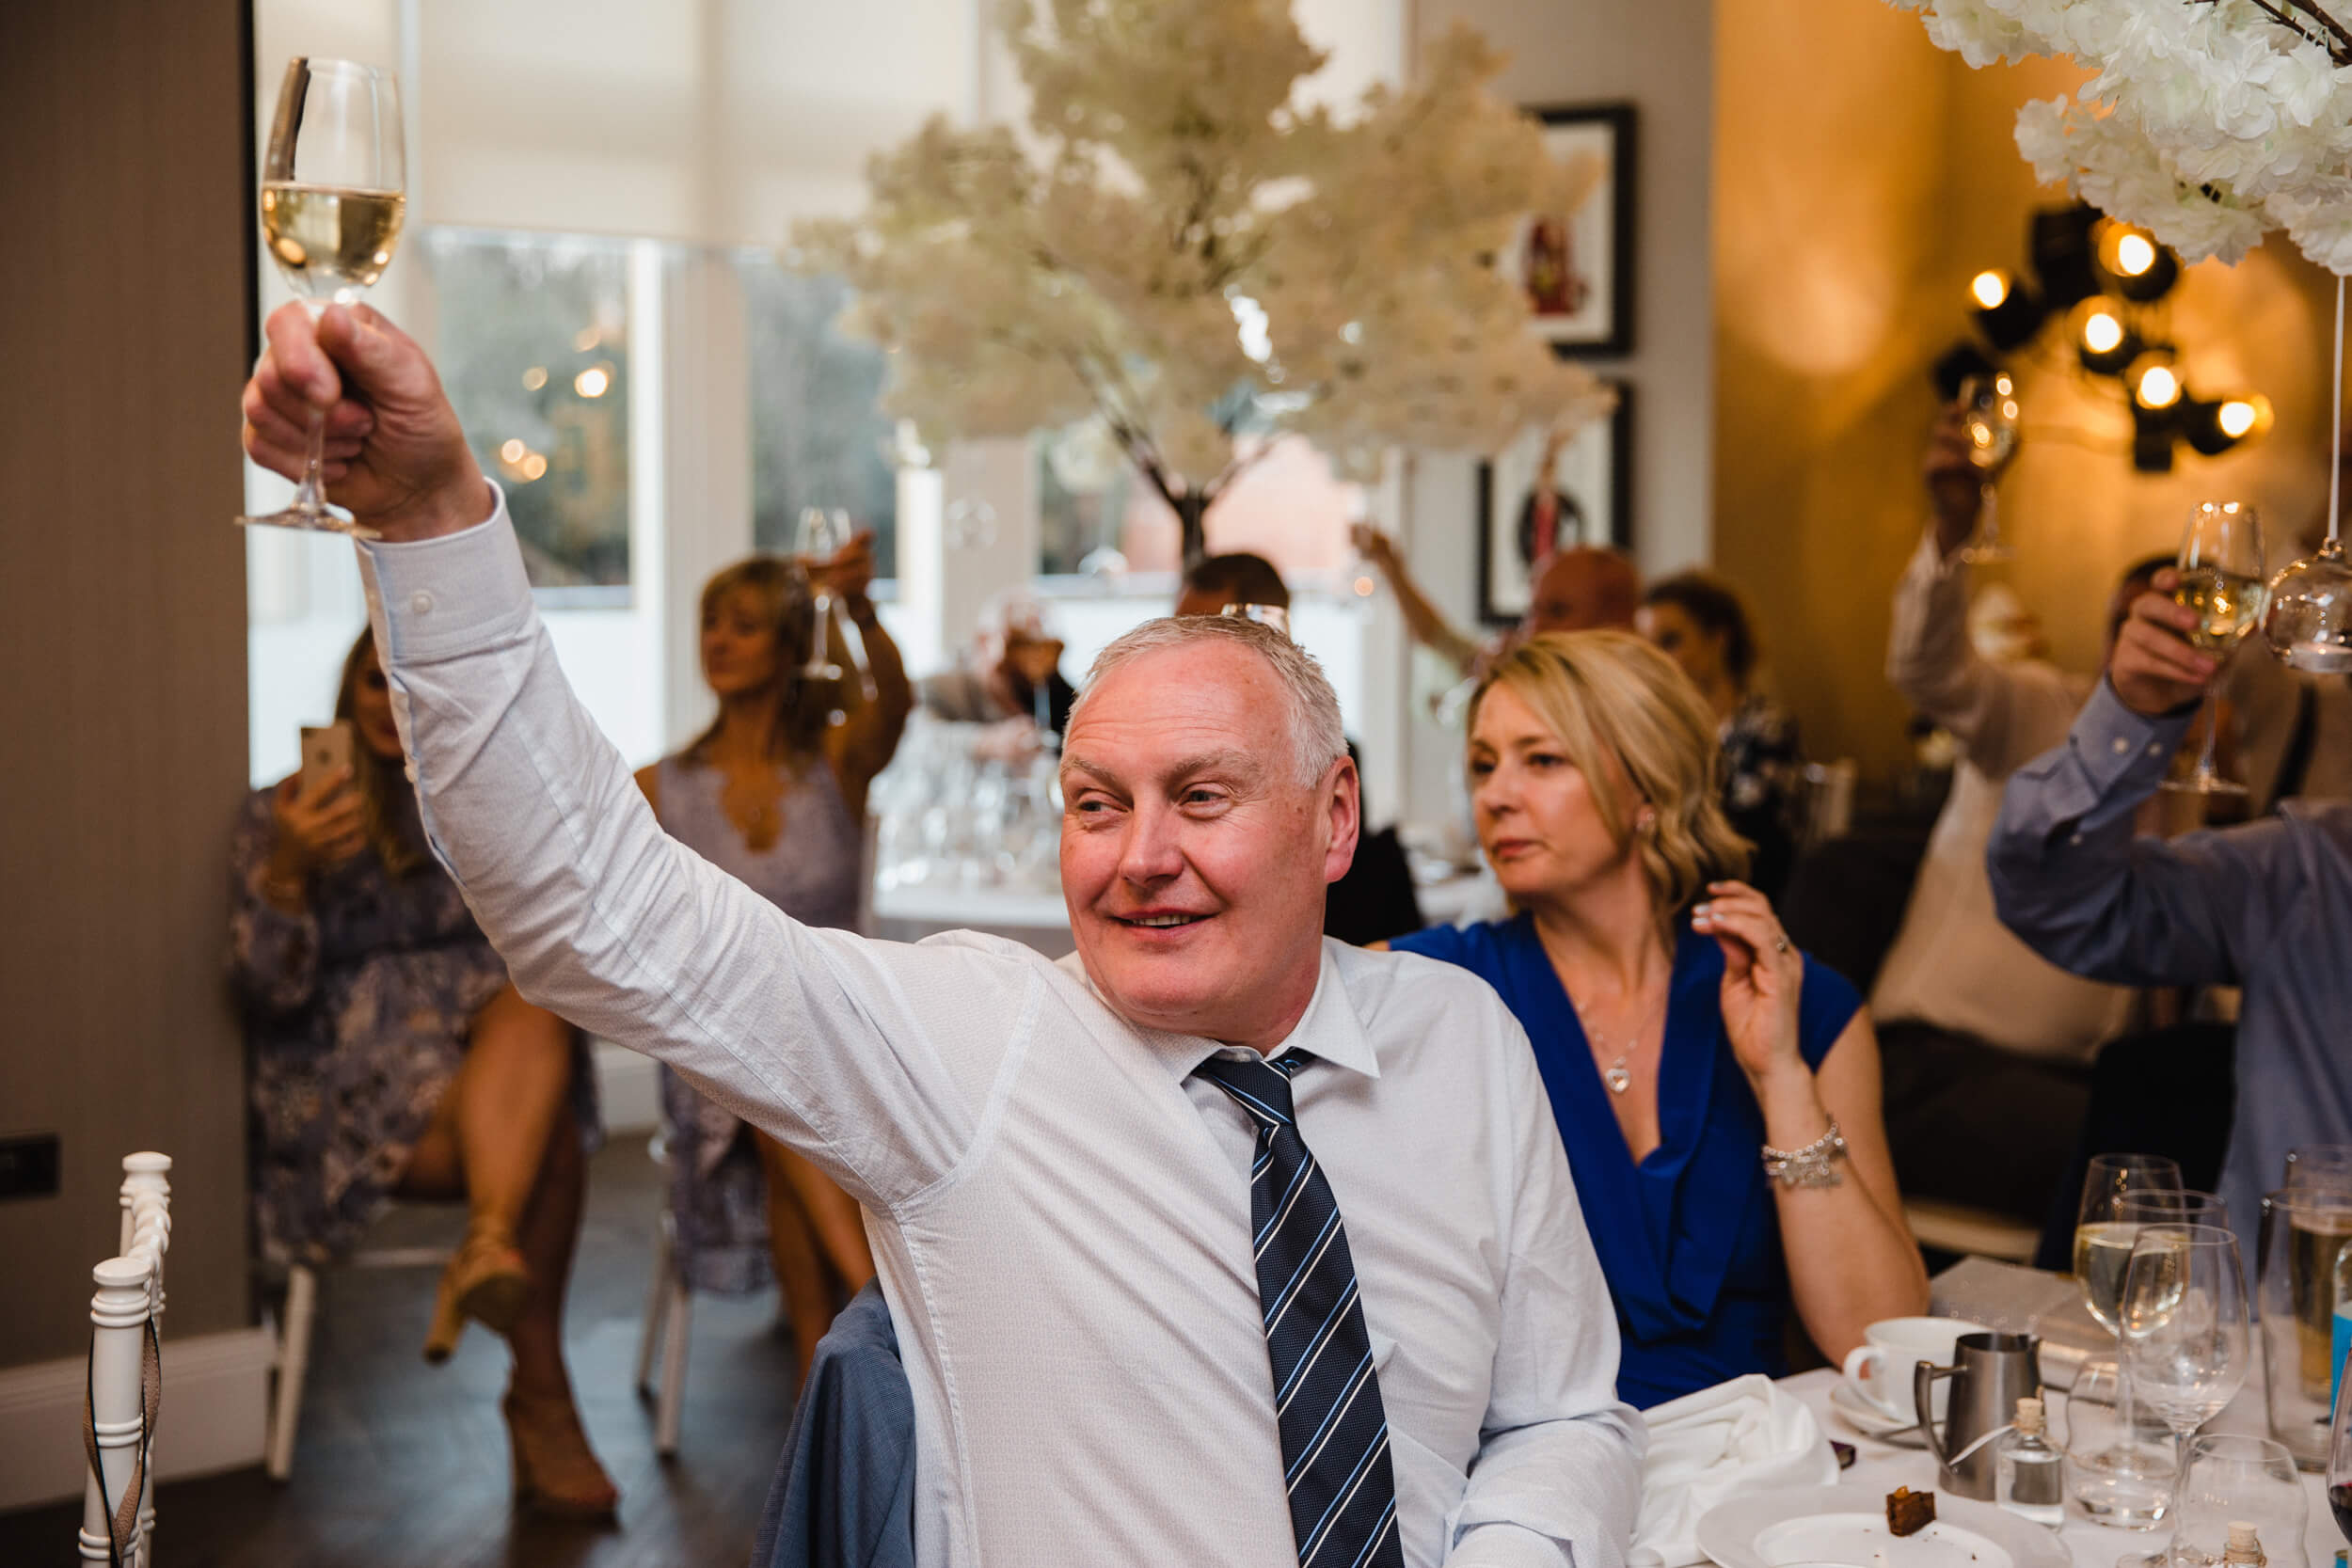 close up photograph of wedding guest holding glass of champagne